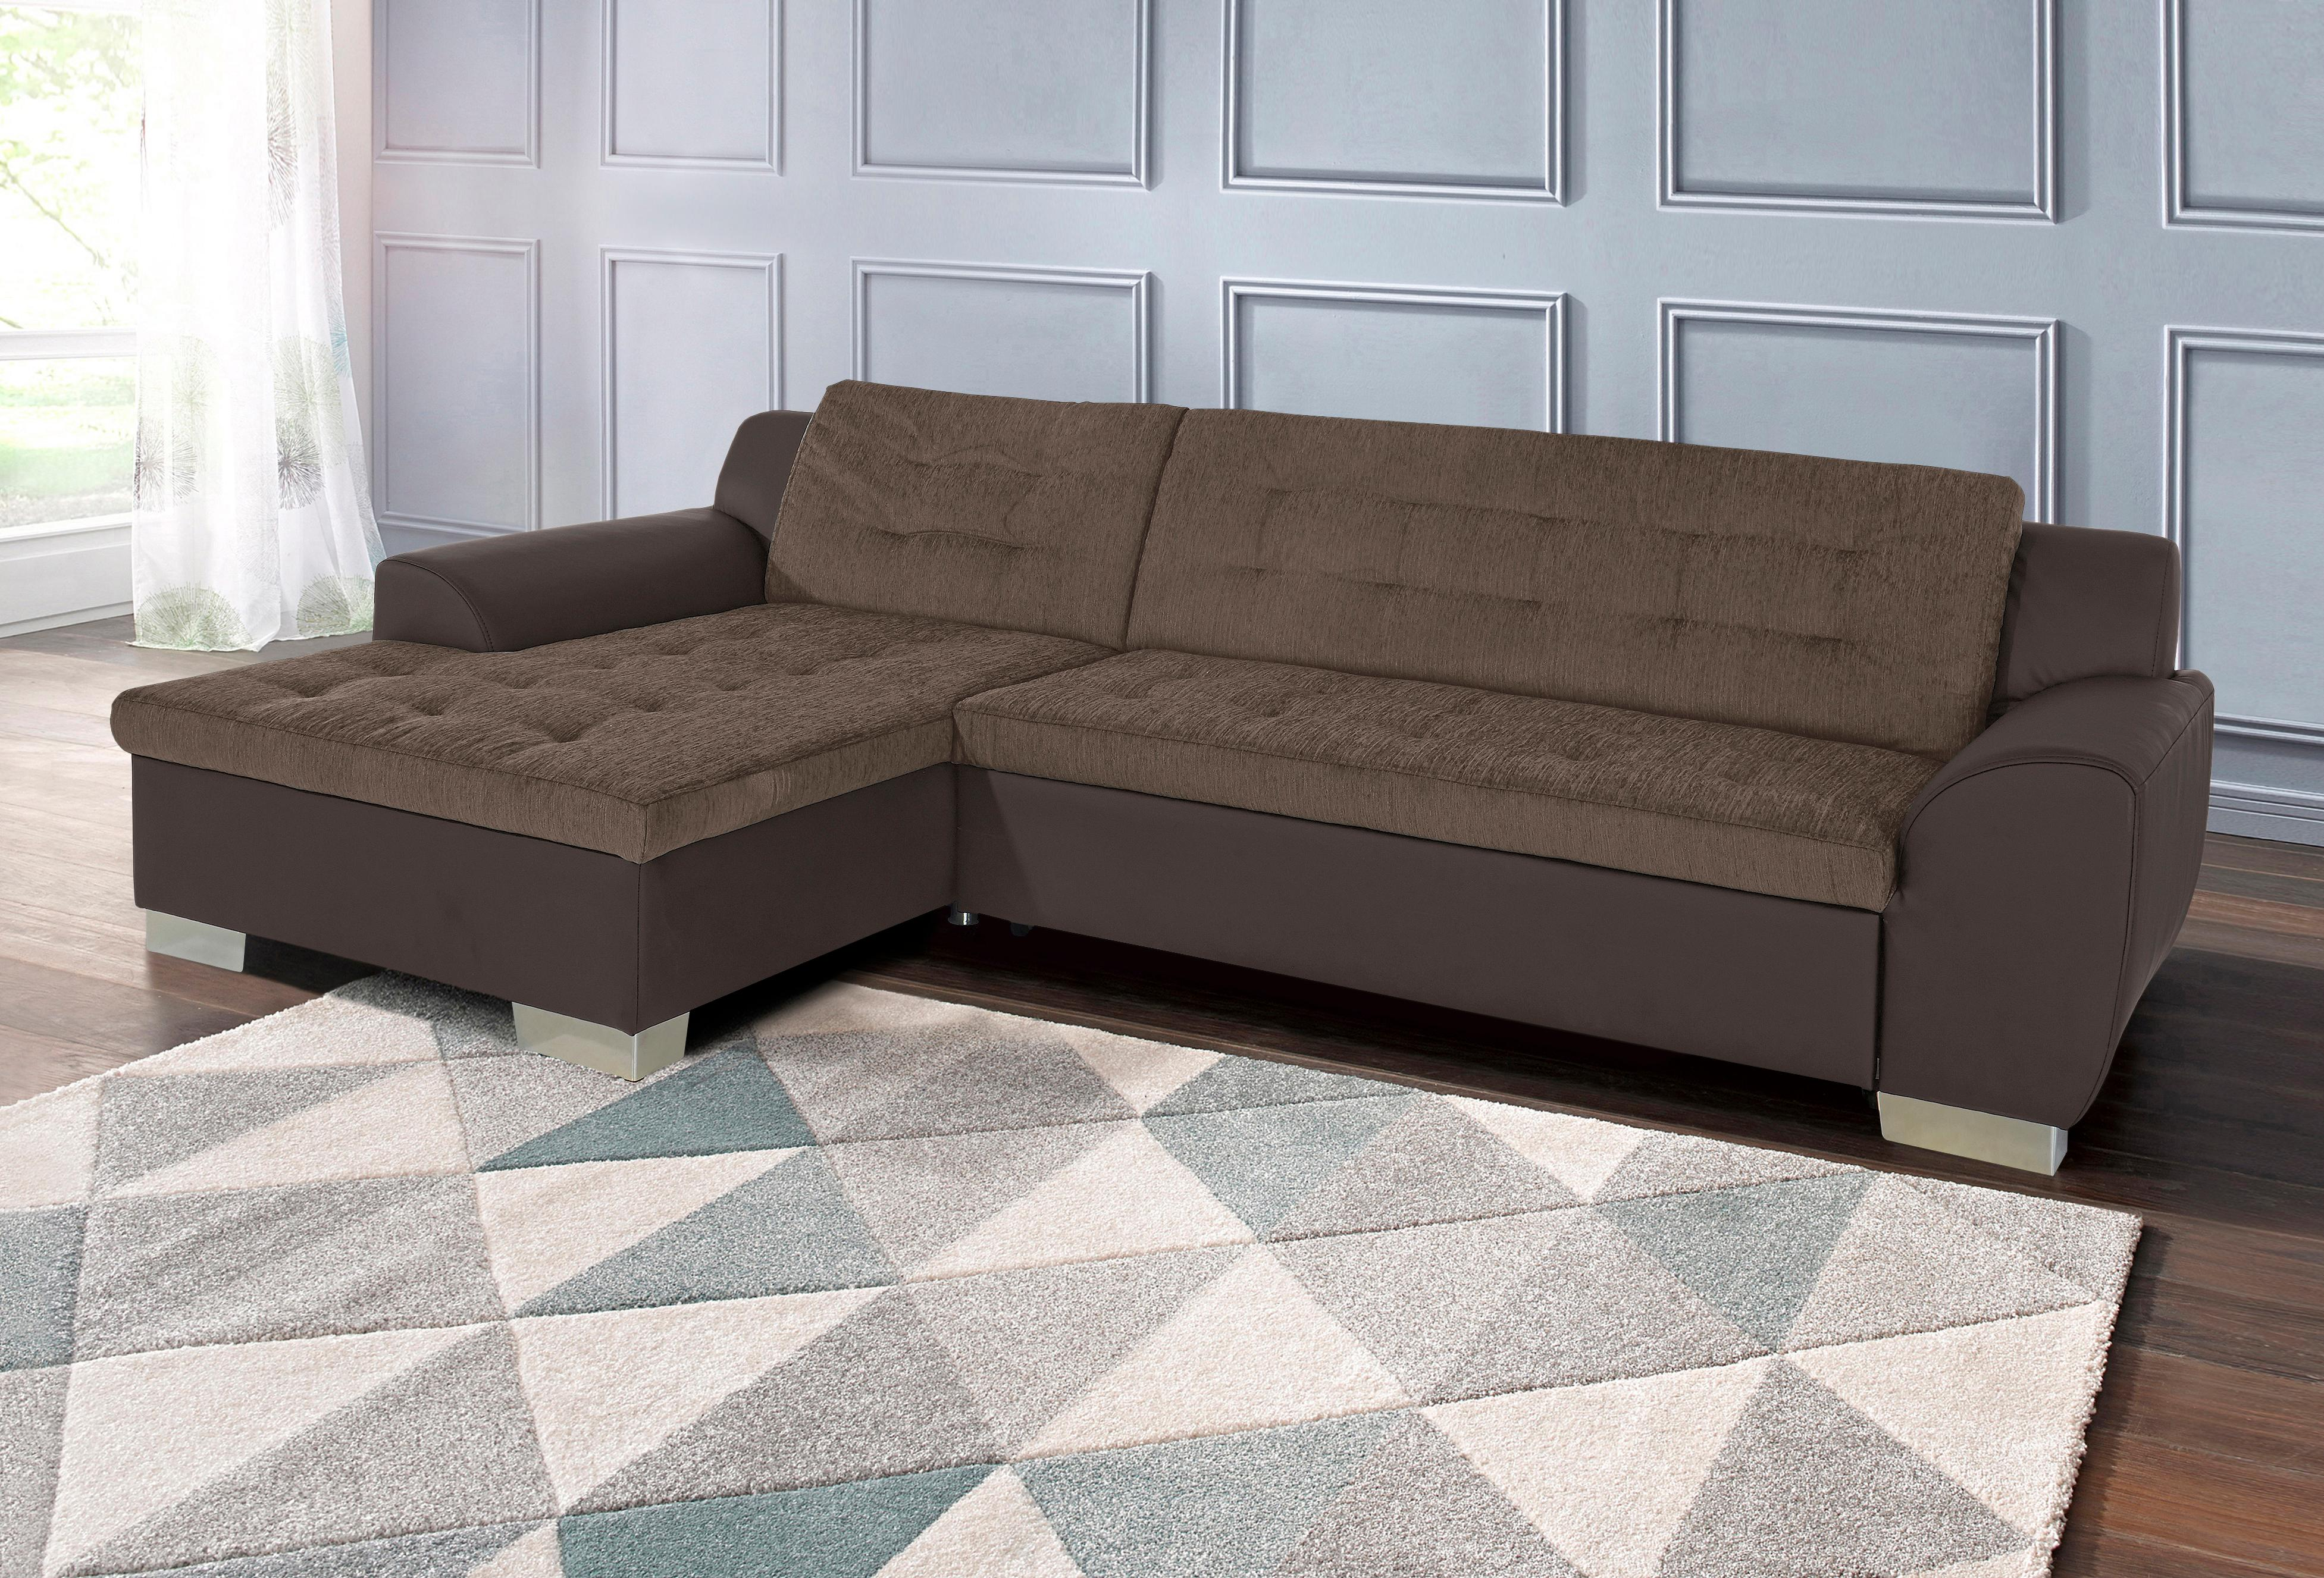 DOMO collection Ecksofa | Wohnzimmer > Sofas & Couches > Ecksofas & Eckcouches | Braun | DOMO COLLECTION